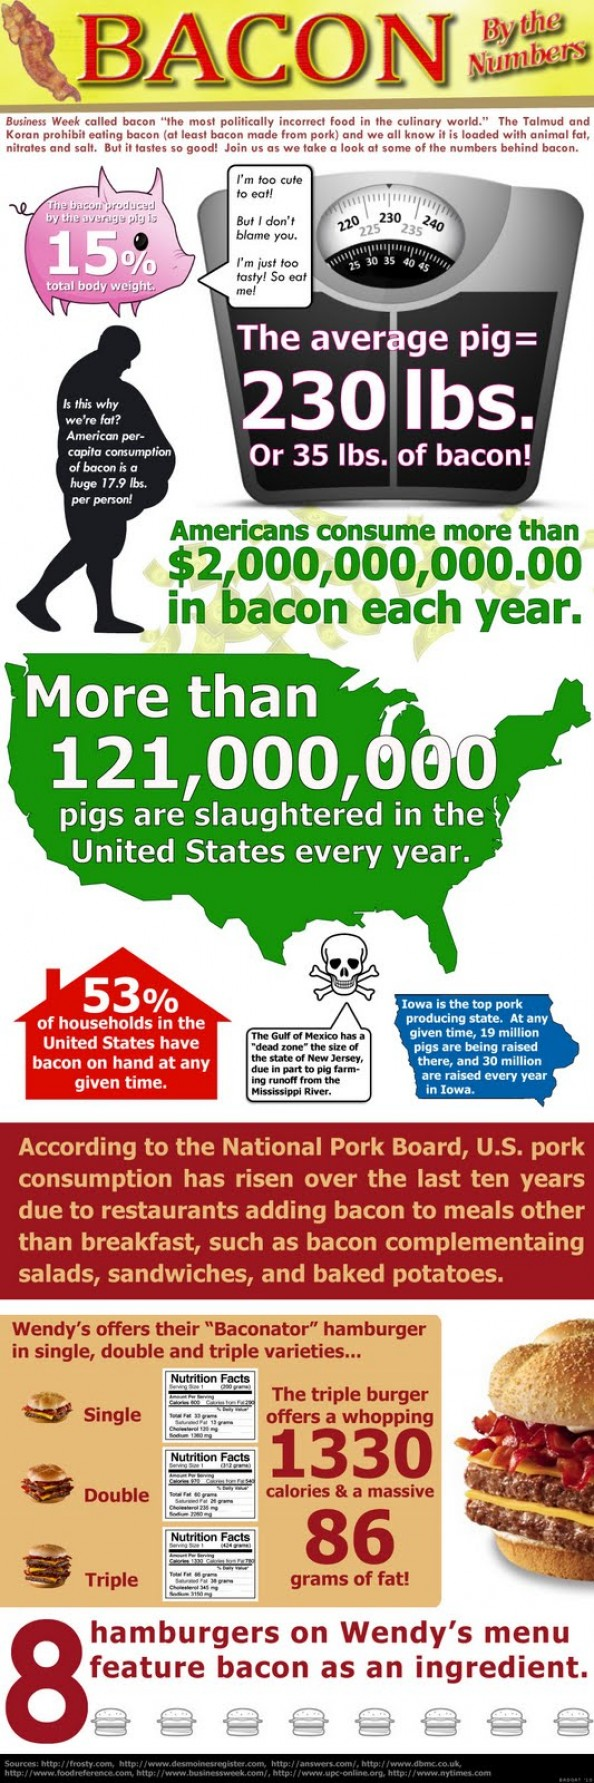 """Bacon: """"The most politically incorrect food in the culinary world.""""  Not Healthy!"""